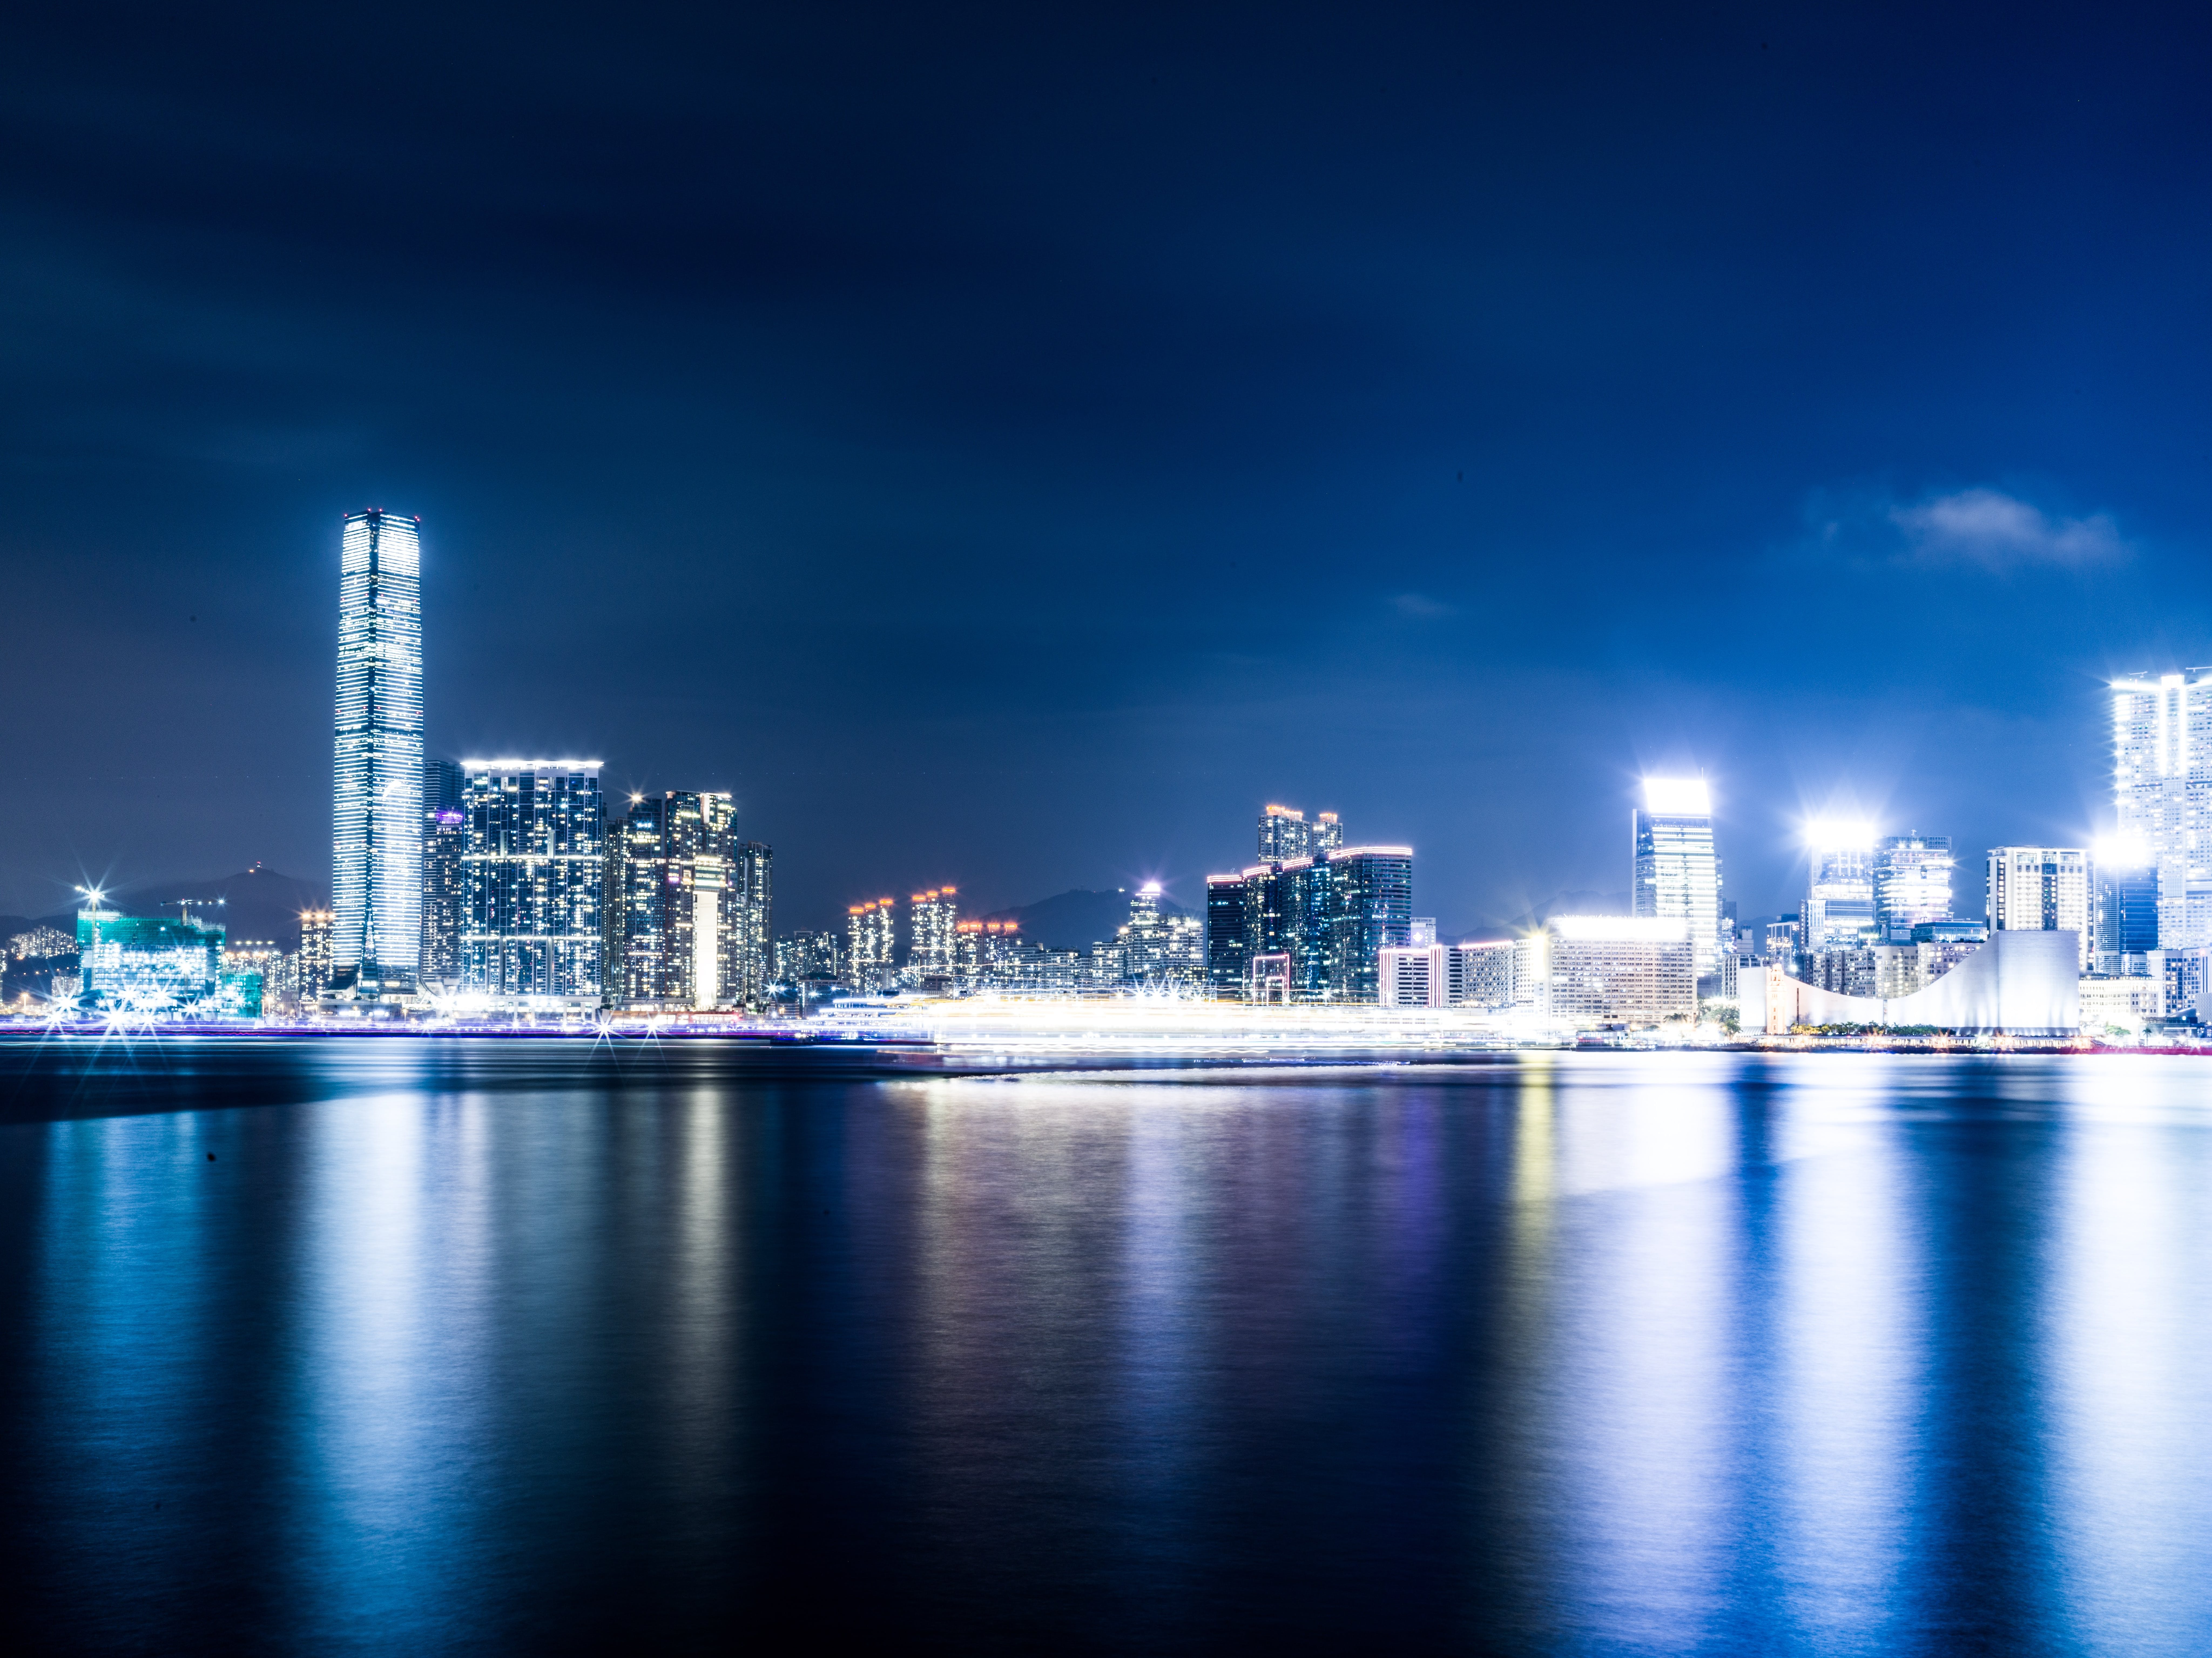 Scenic View of City Lights